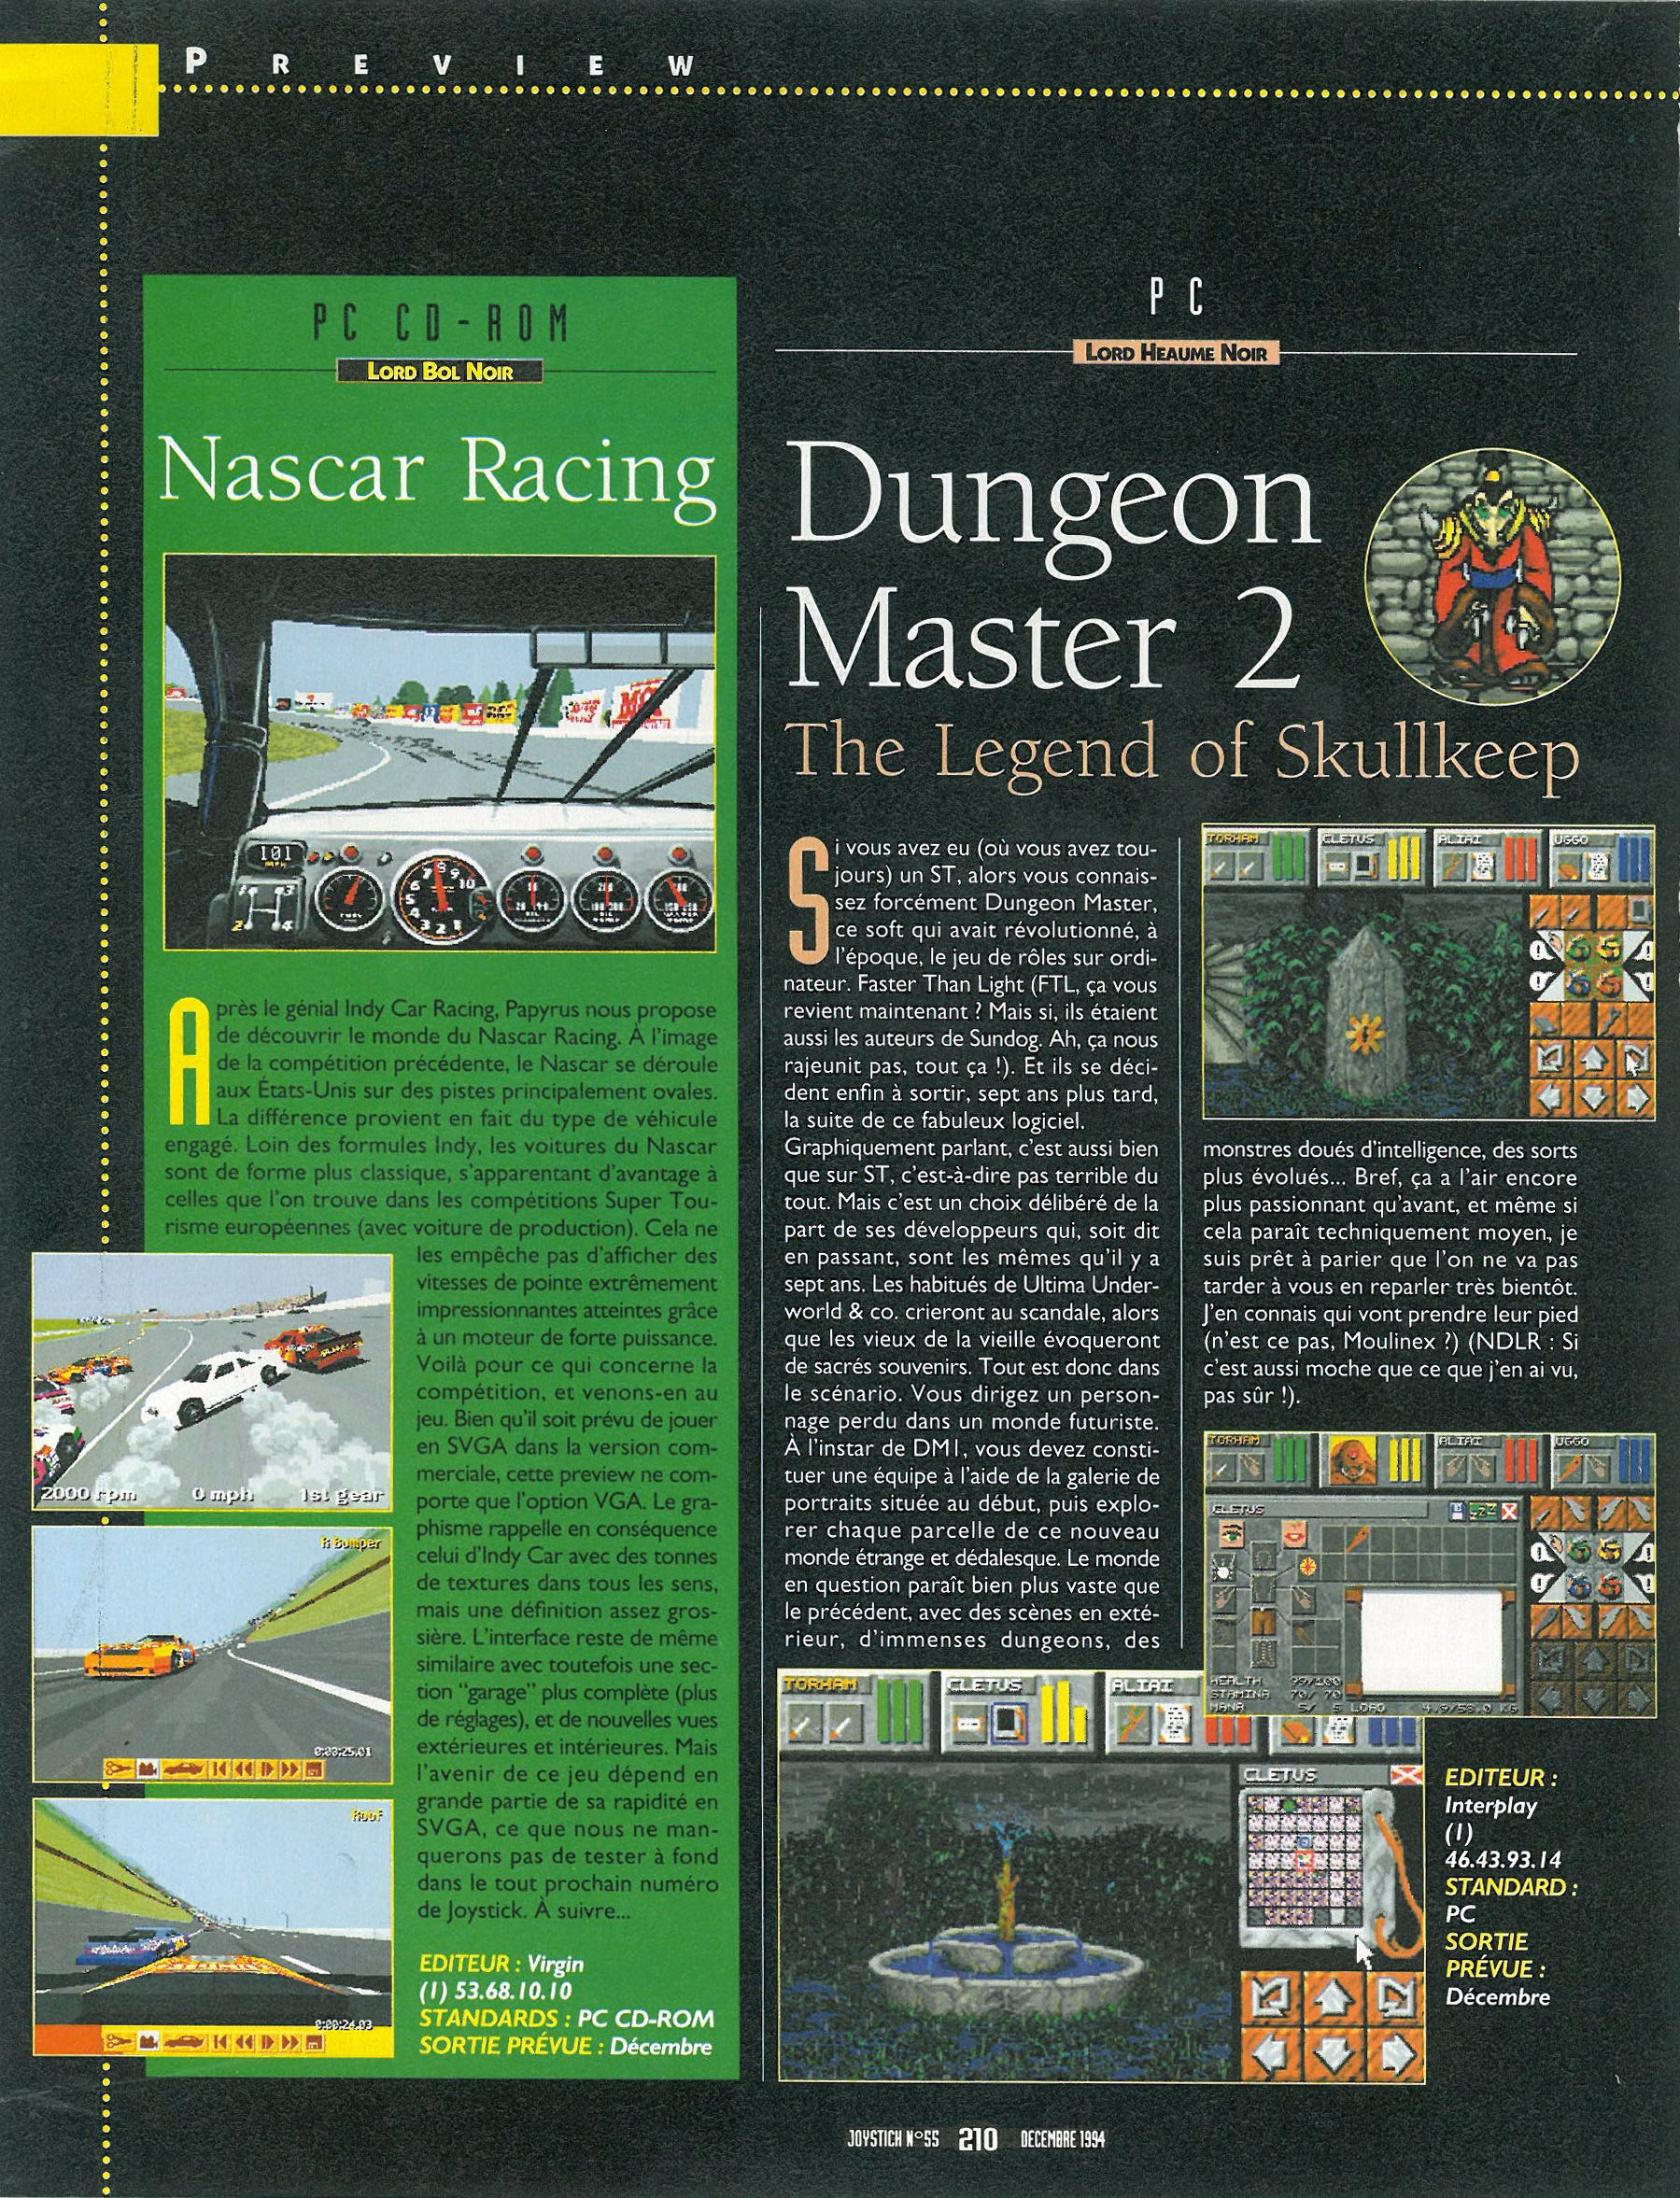 Dungeon Master II Preview published in French magazine 'Joystick', Issue #55 December 1994, Page 210